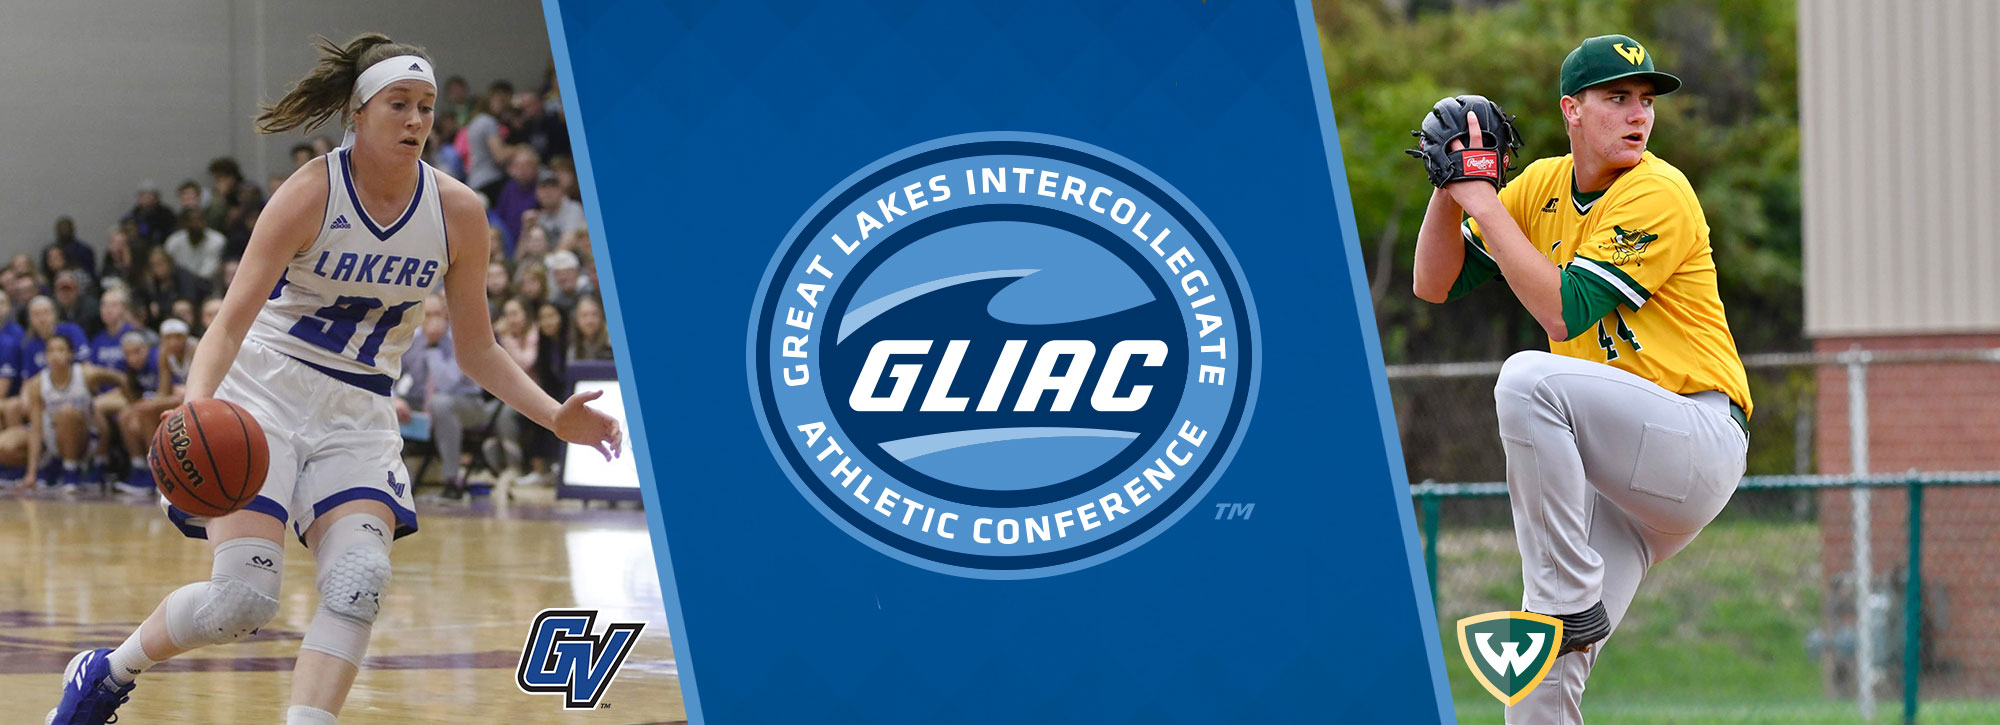 Grand Valley State's Boensch, Wayne State's Brown Named 2018-19 GLIAC Scholar-Athletes of the Year